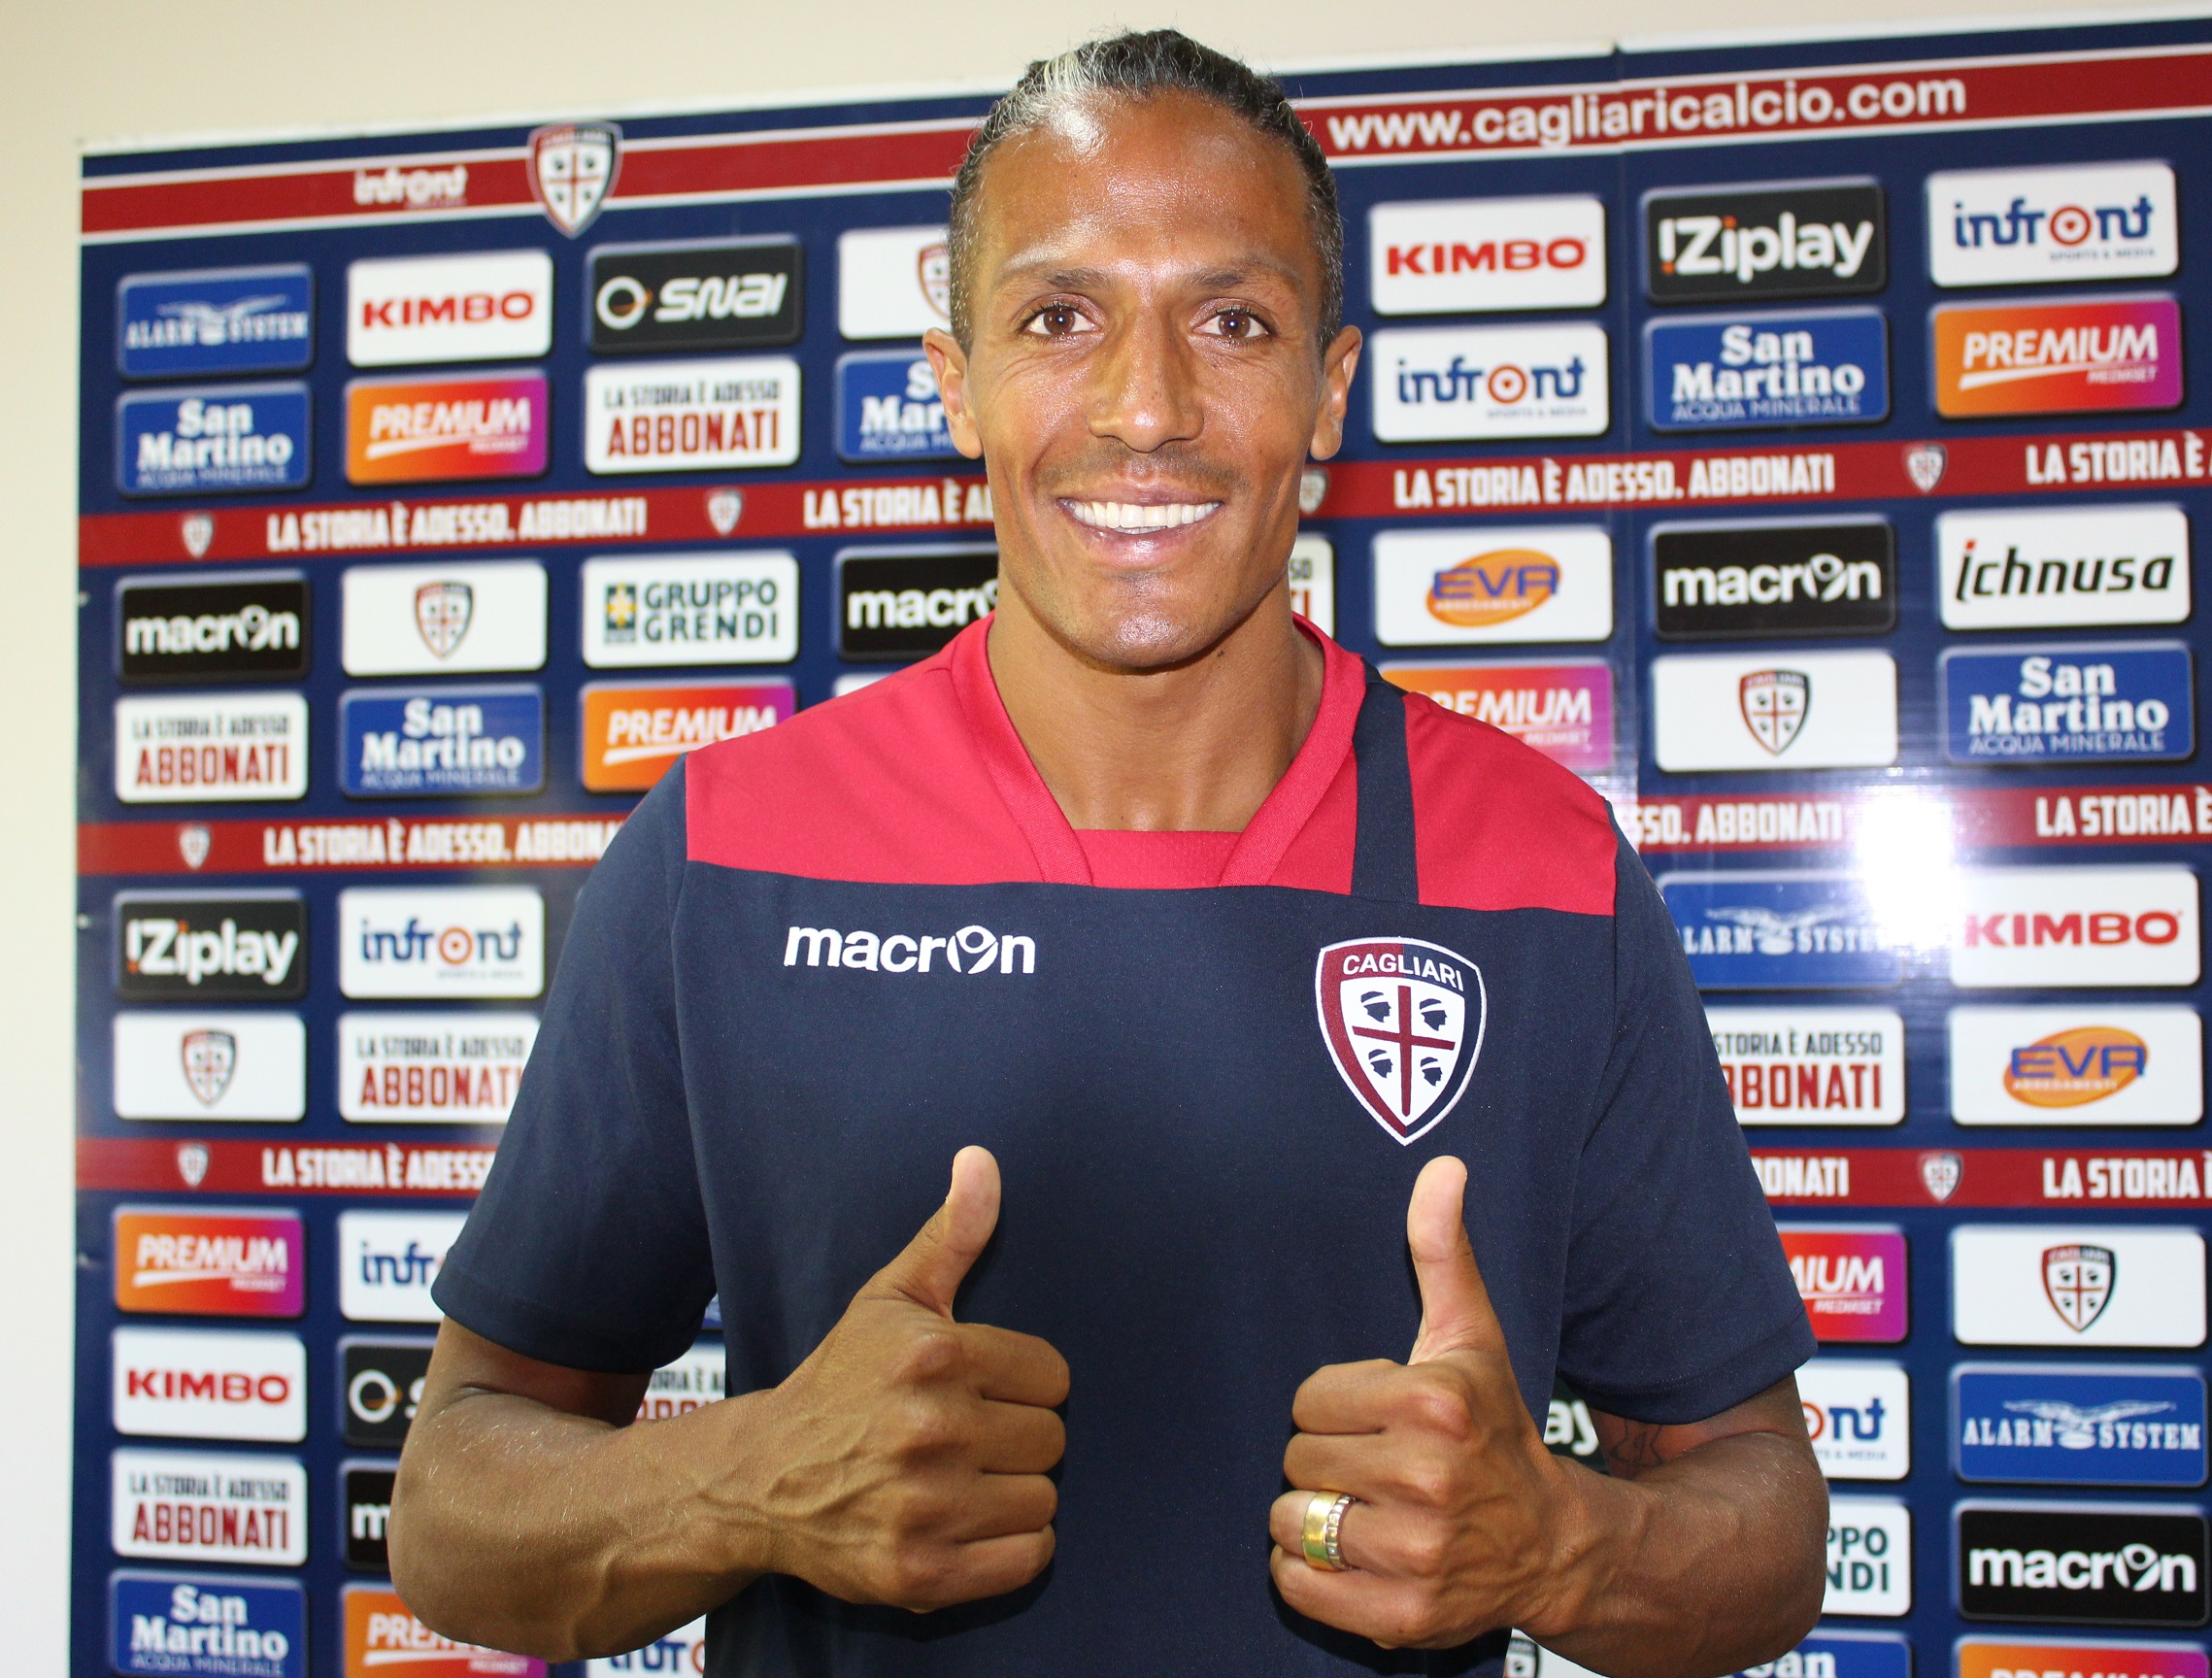 bruno-alves-mezzobusto